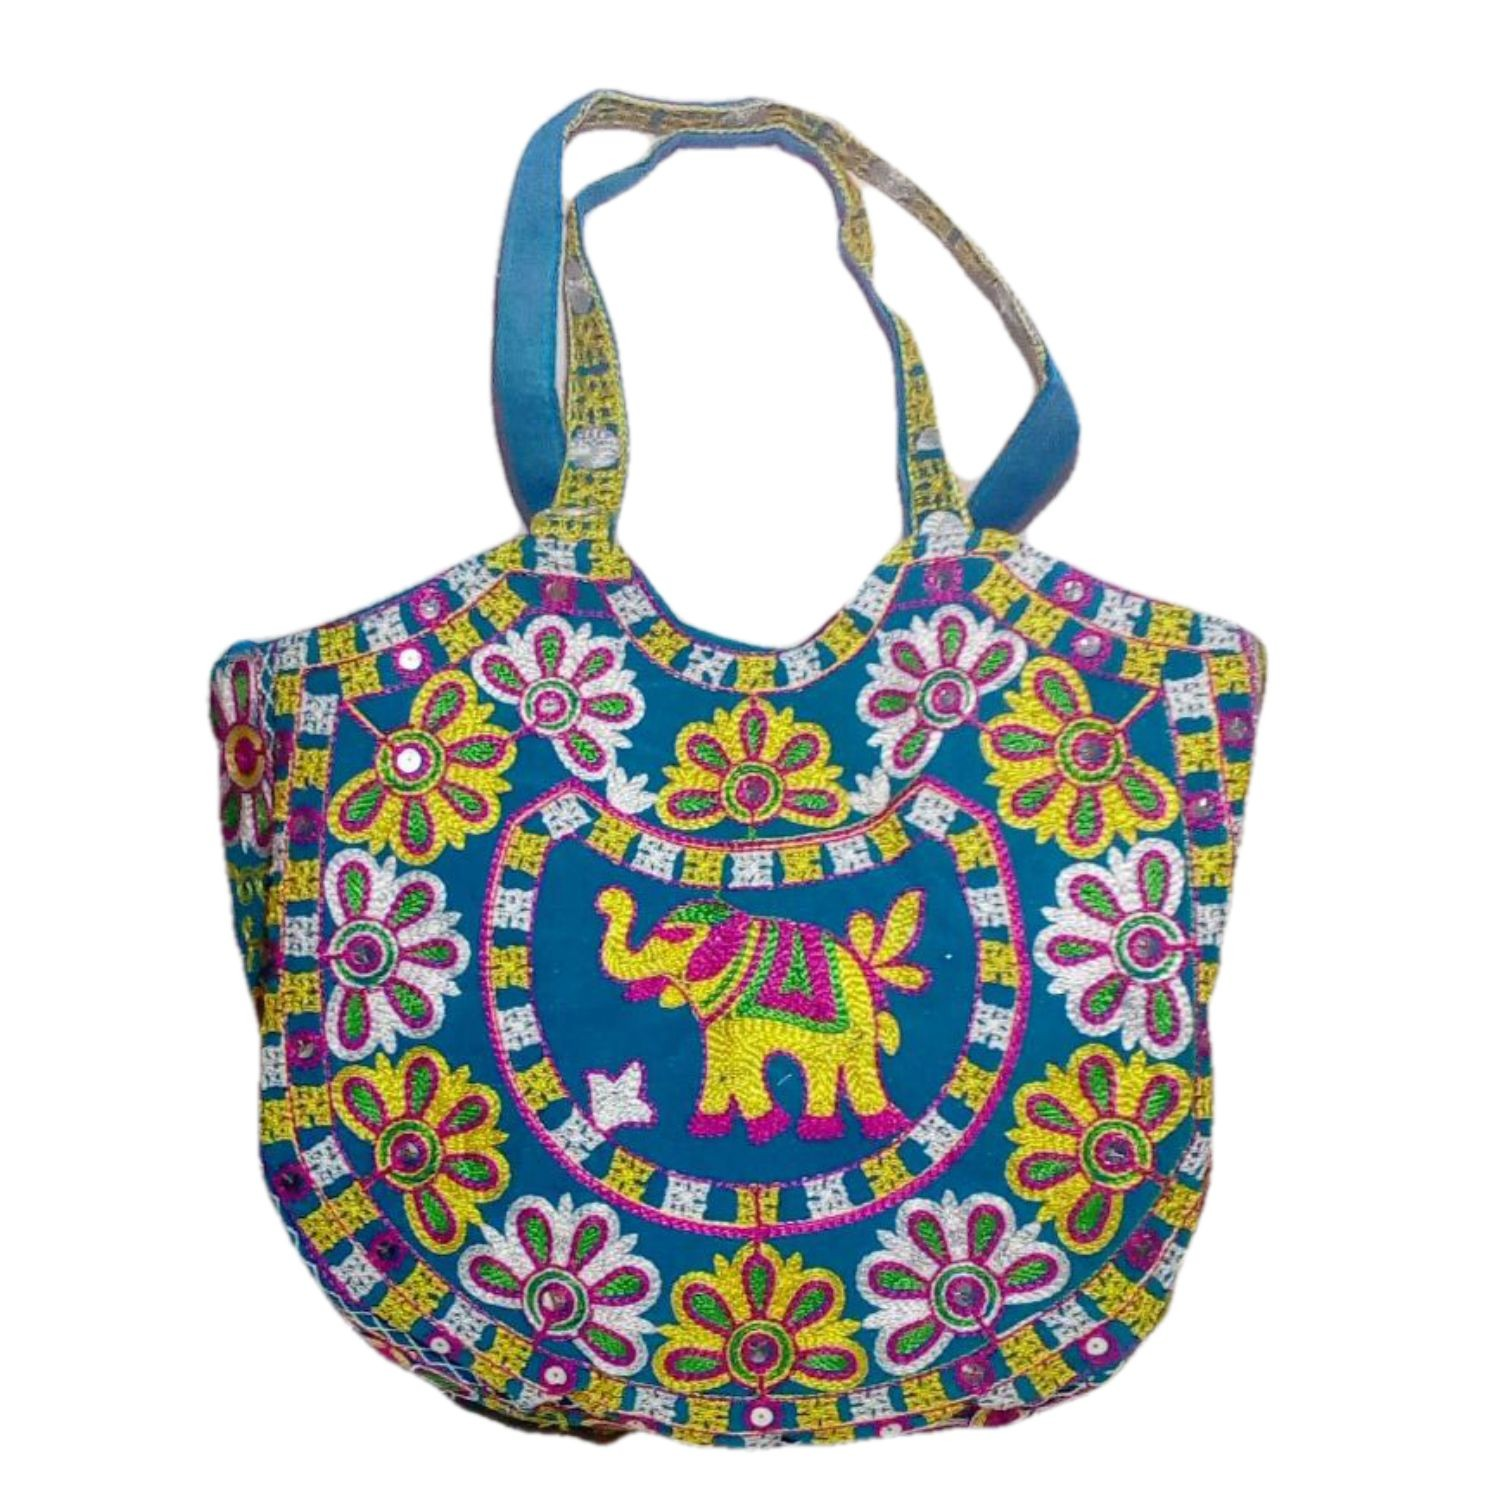 Handmade Excellent Sky Blue Genuine Shoulder Bag  with embroidery work  by Women Self Help Groups of Rajasthan